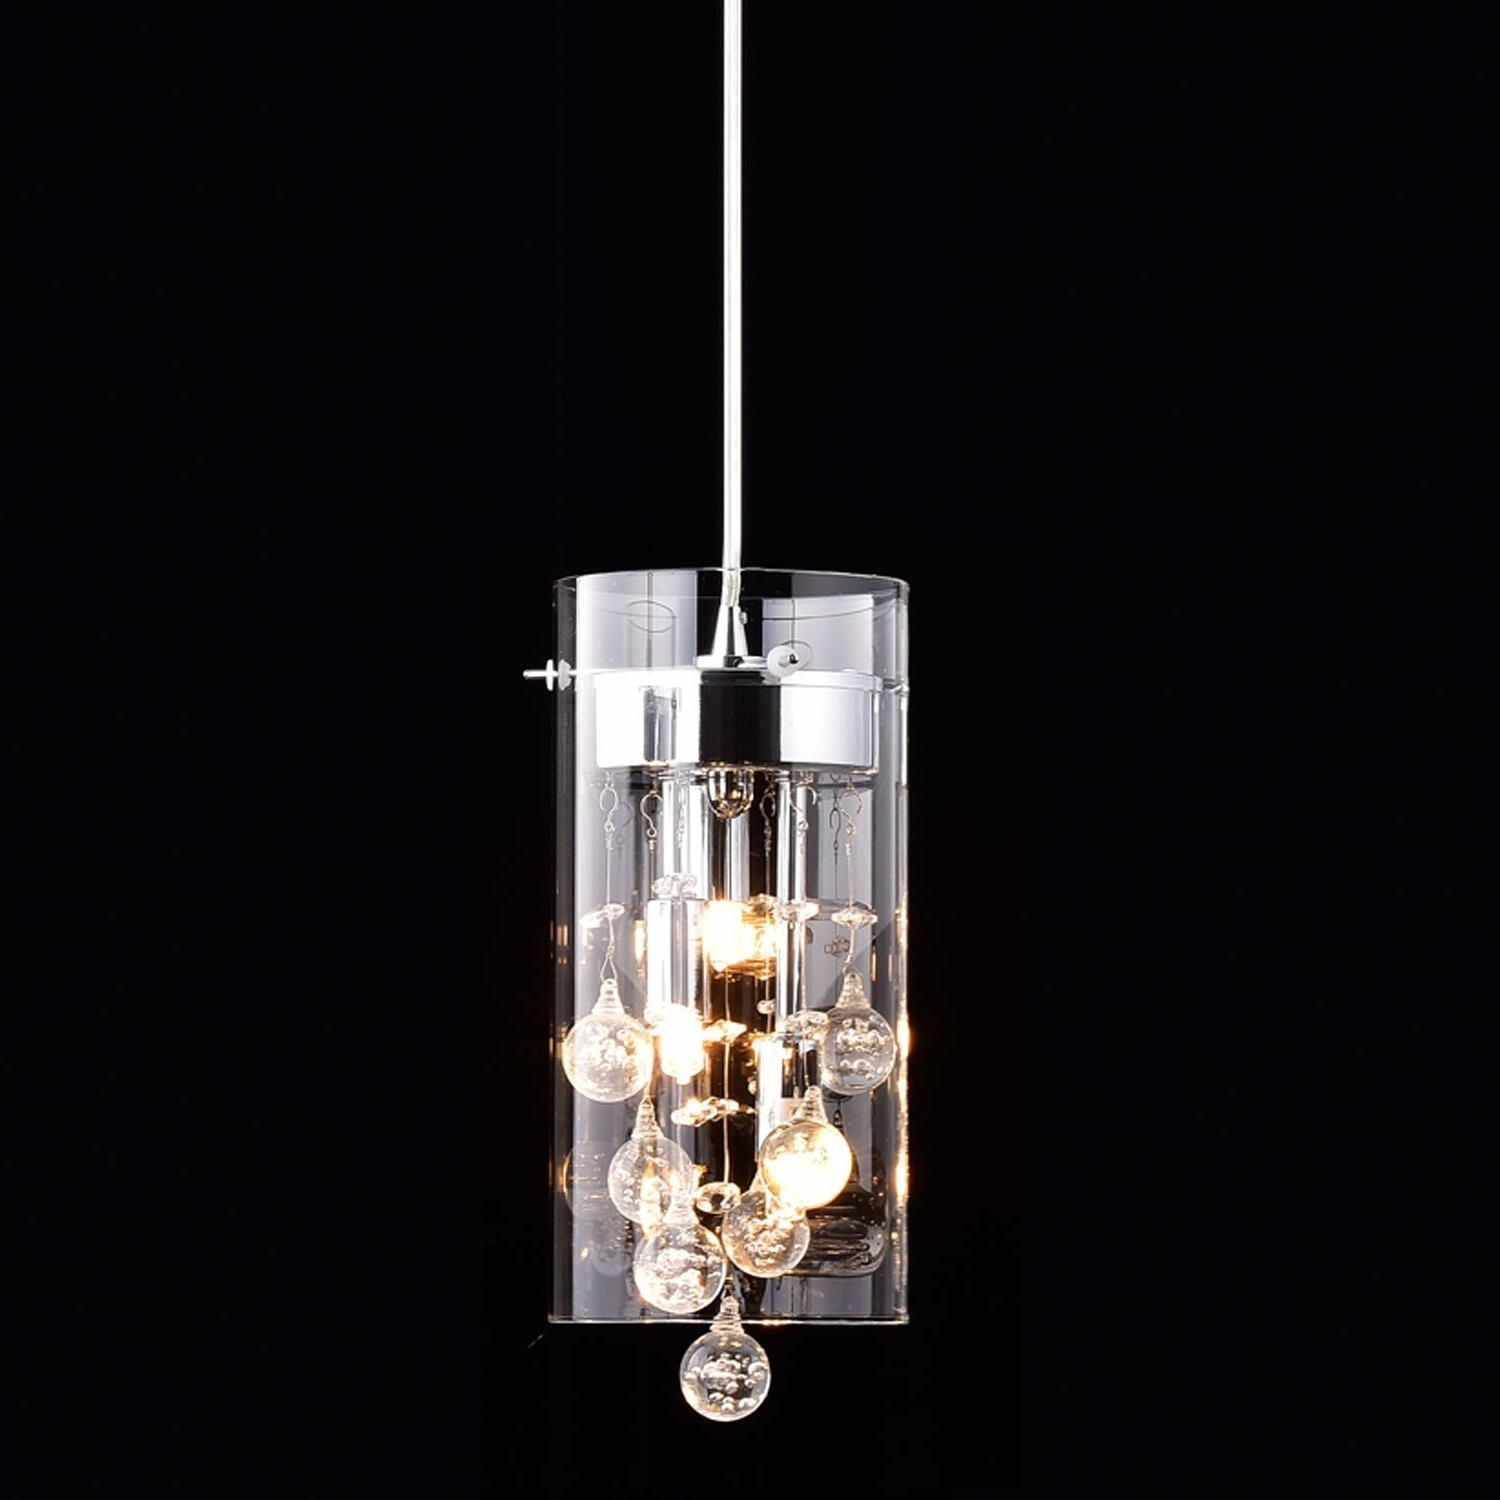 Claxy Ecopower Lighting Glass & Crystal Pendant Lighting Modern Intended For Most Recent Modern Light Chandelier (View 11 of 15)